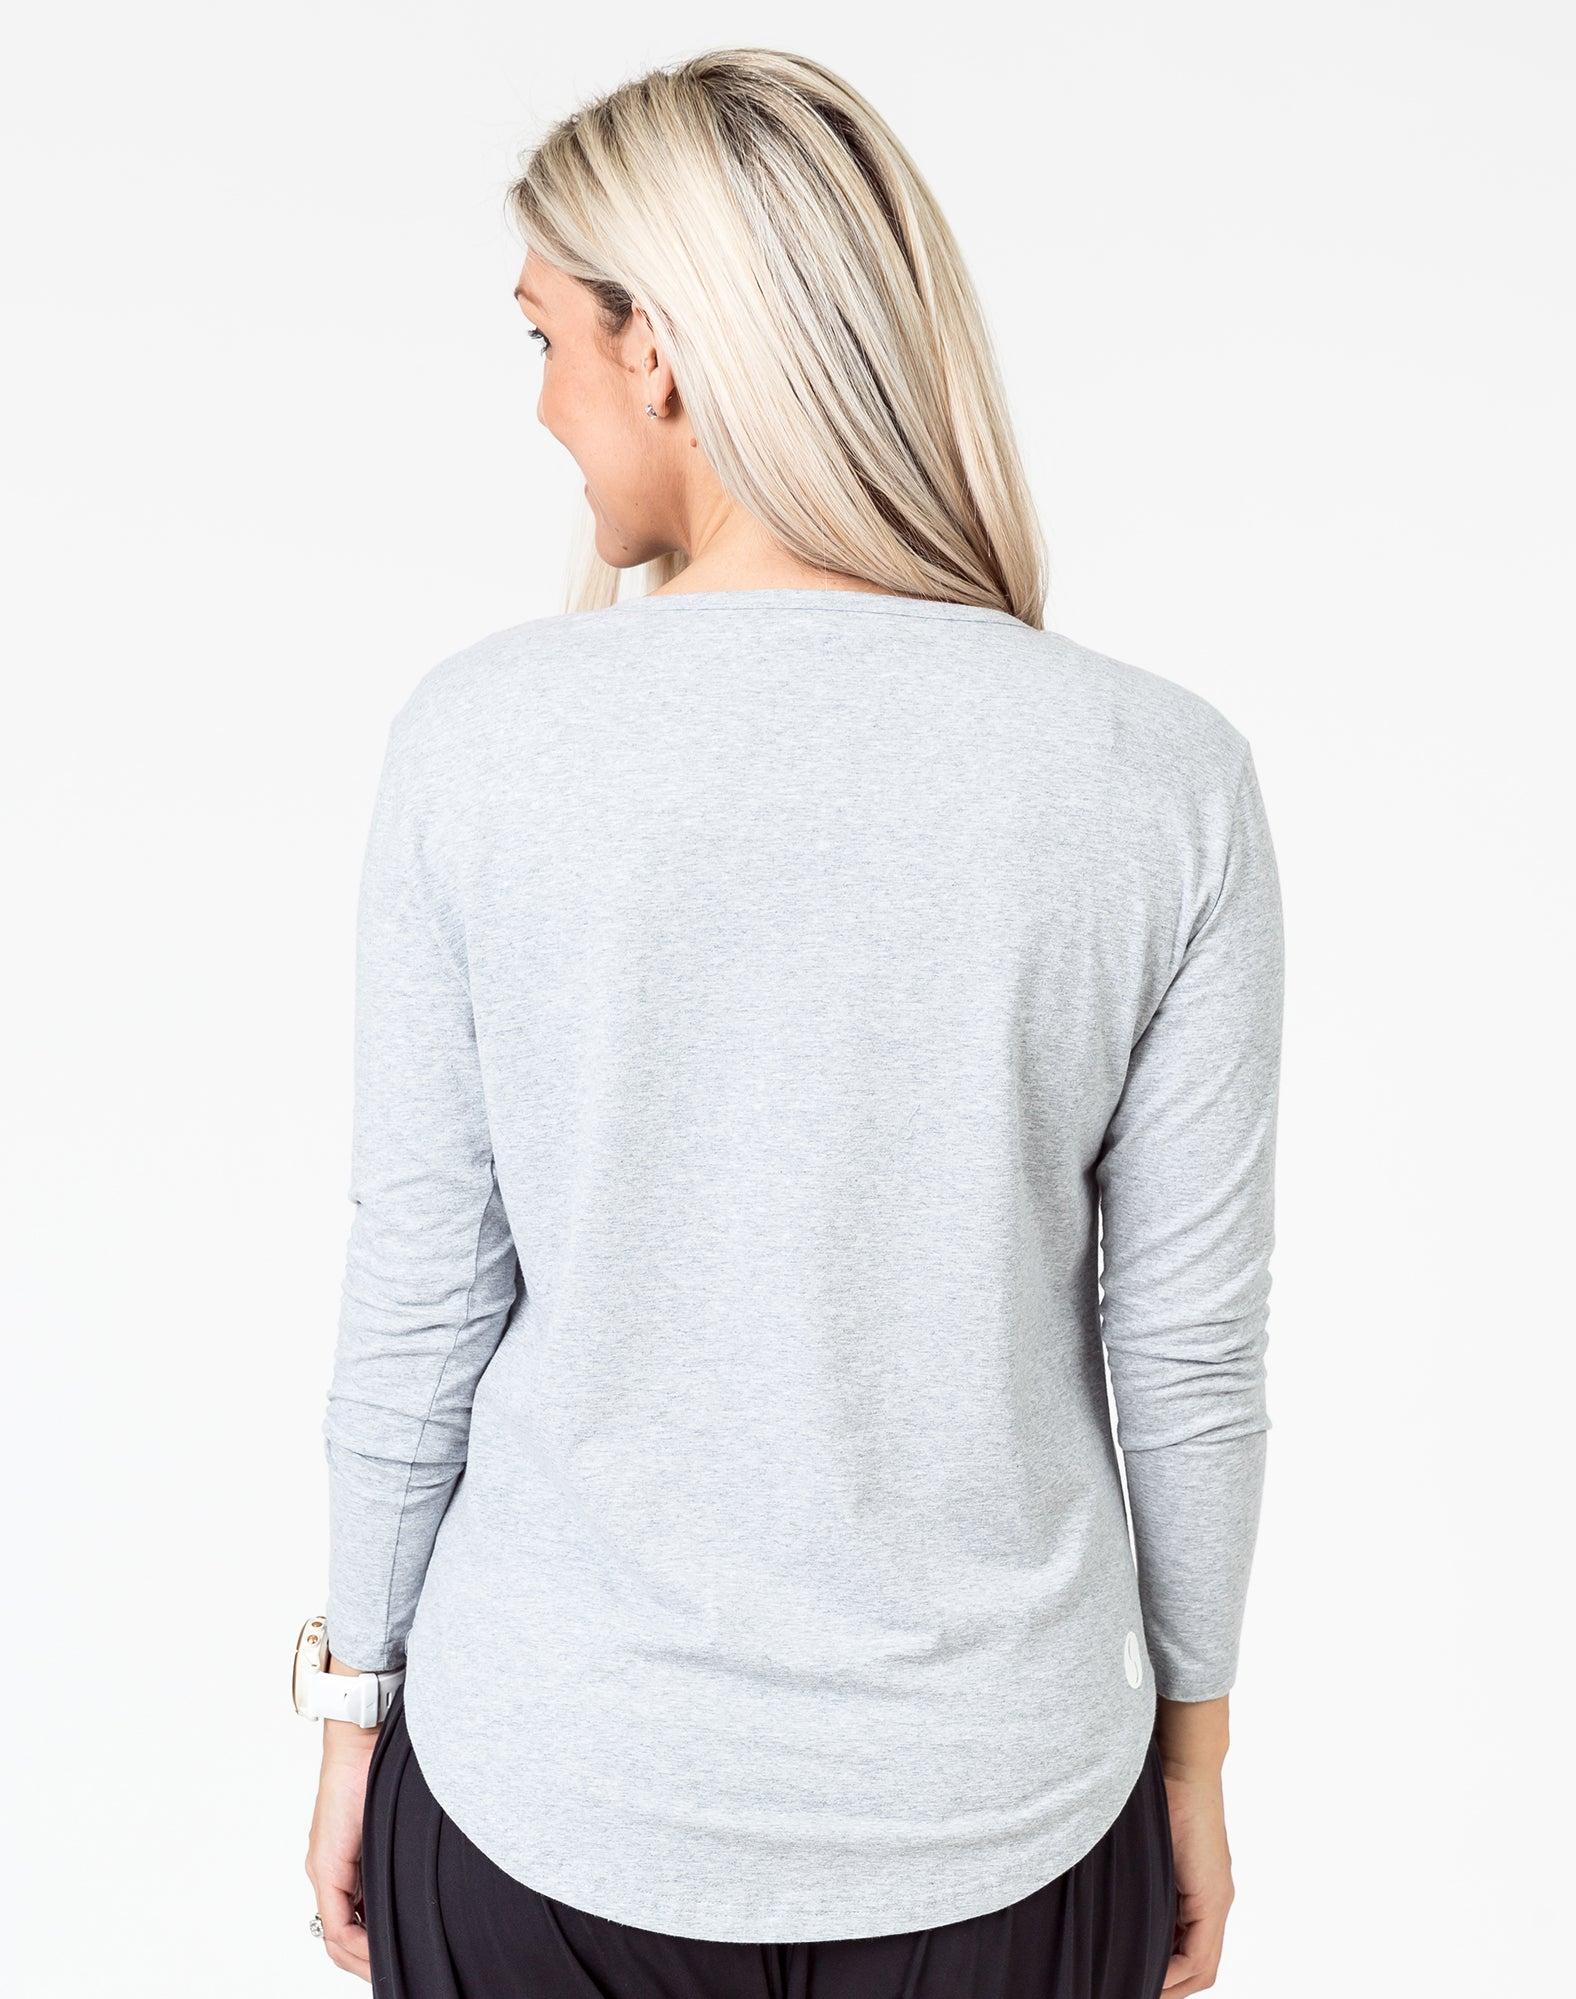 Maternity Top - Cruise Long Sleeve Grey